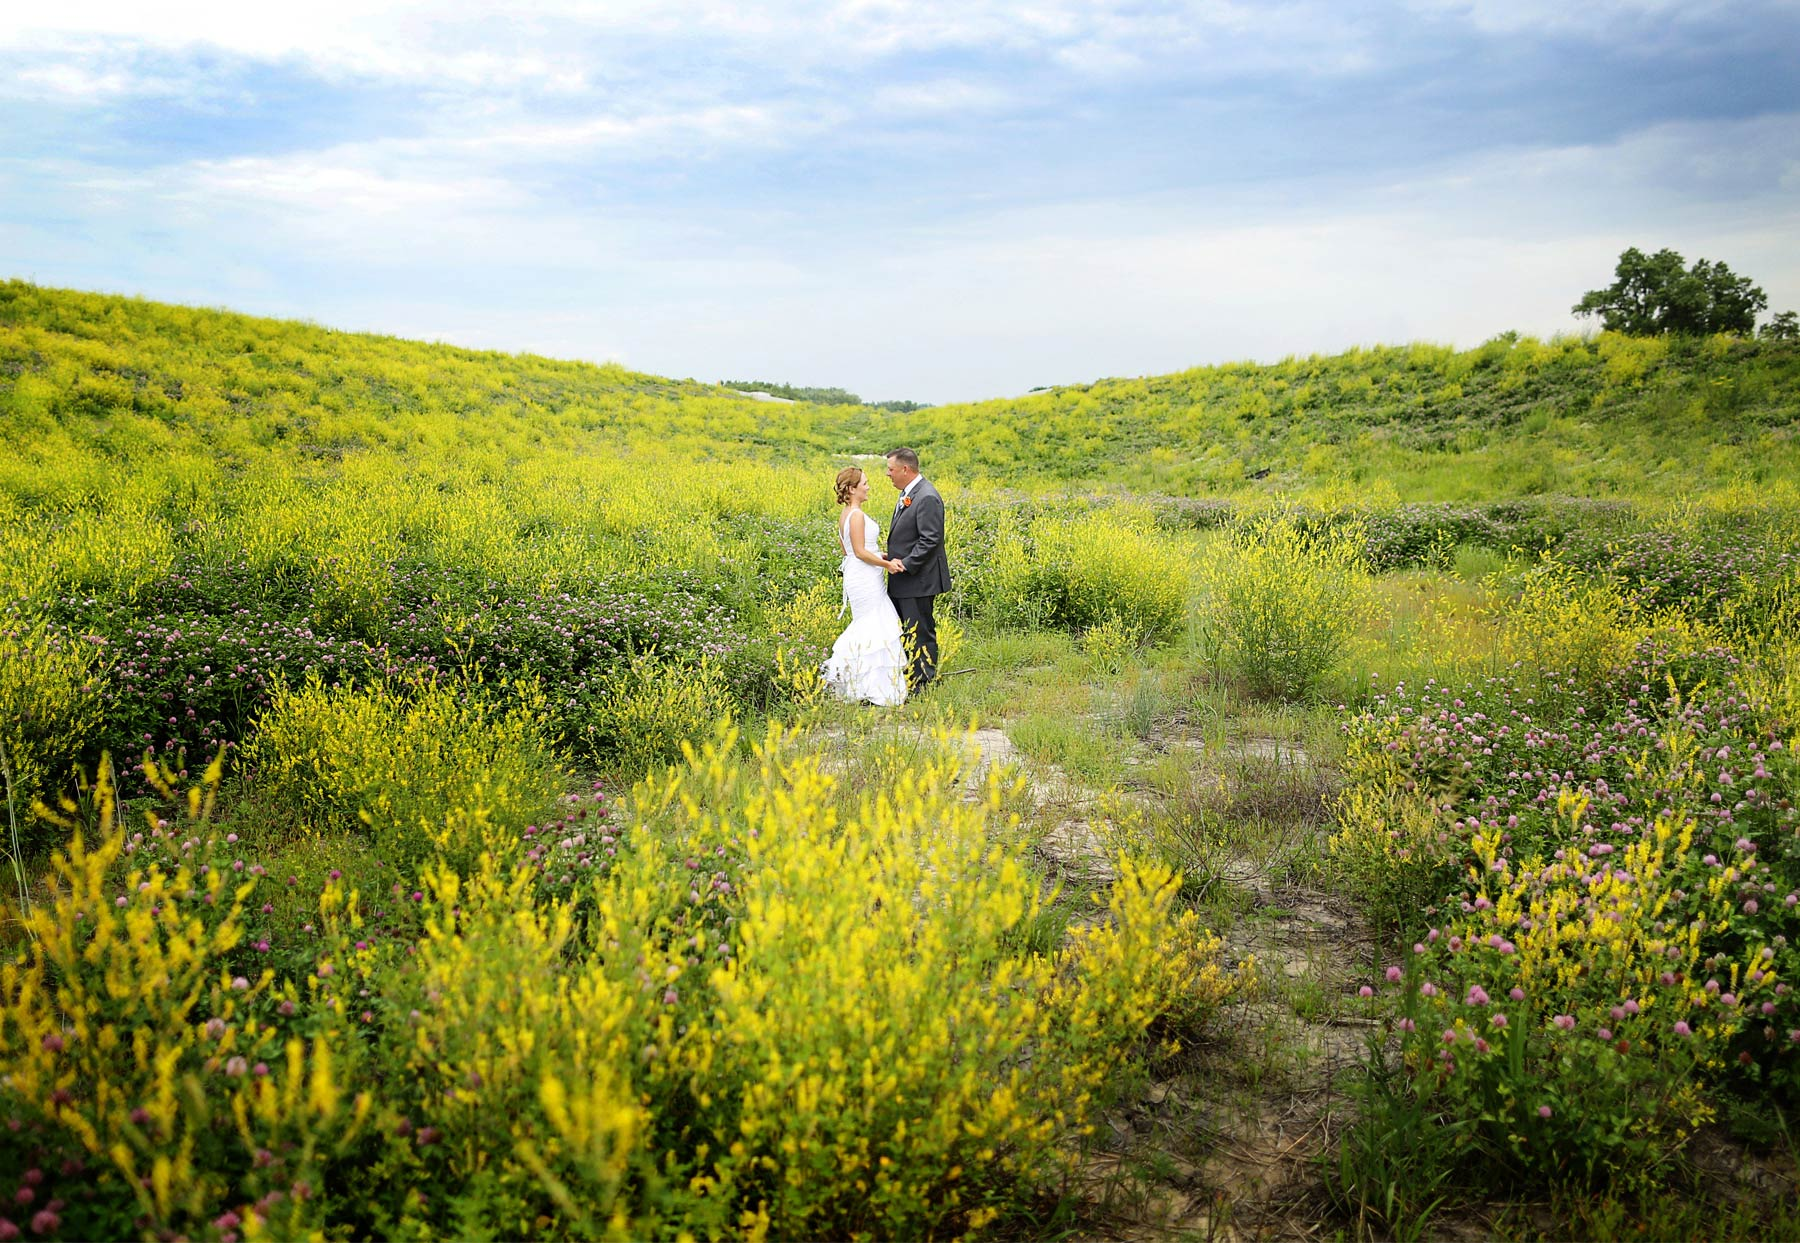 10-Des-Moines-Iowa-Wedding-Photography-by-Vick-Photography-Farm-Wedding-First-Look-Fields-Lindsay-&-Chad.jpg